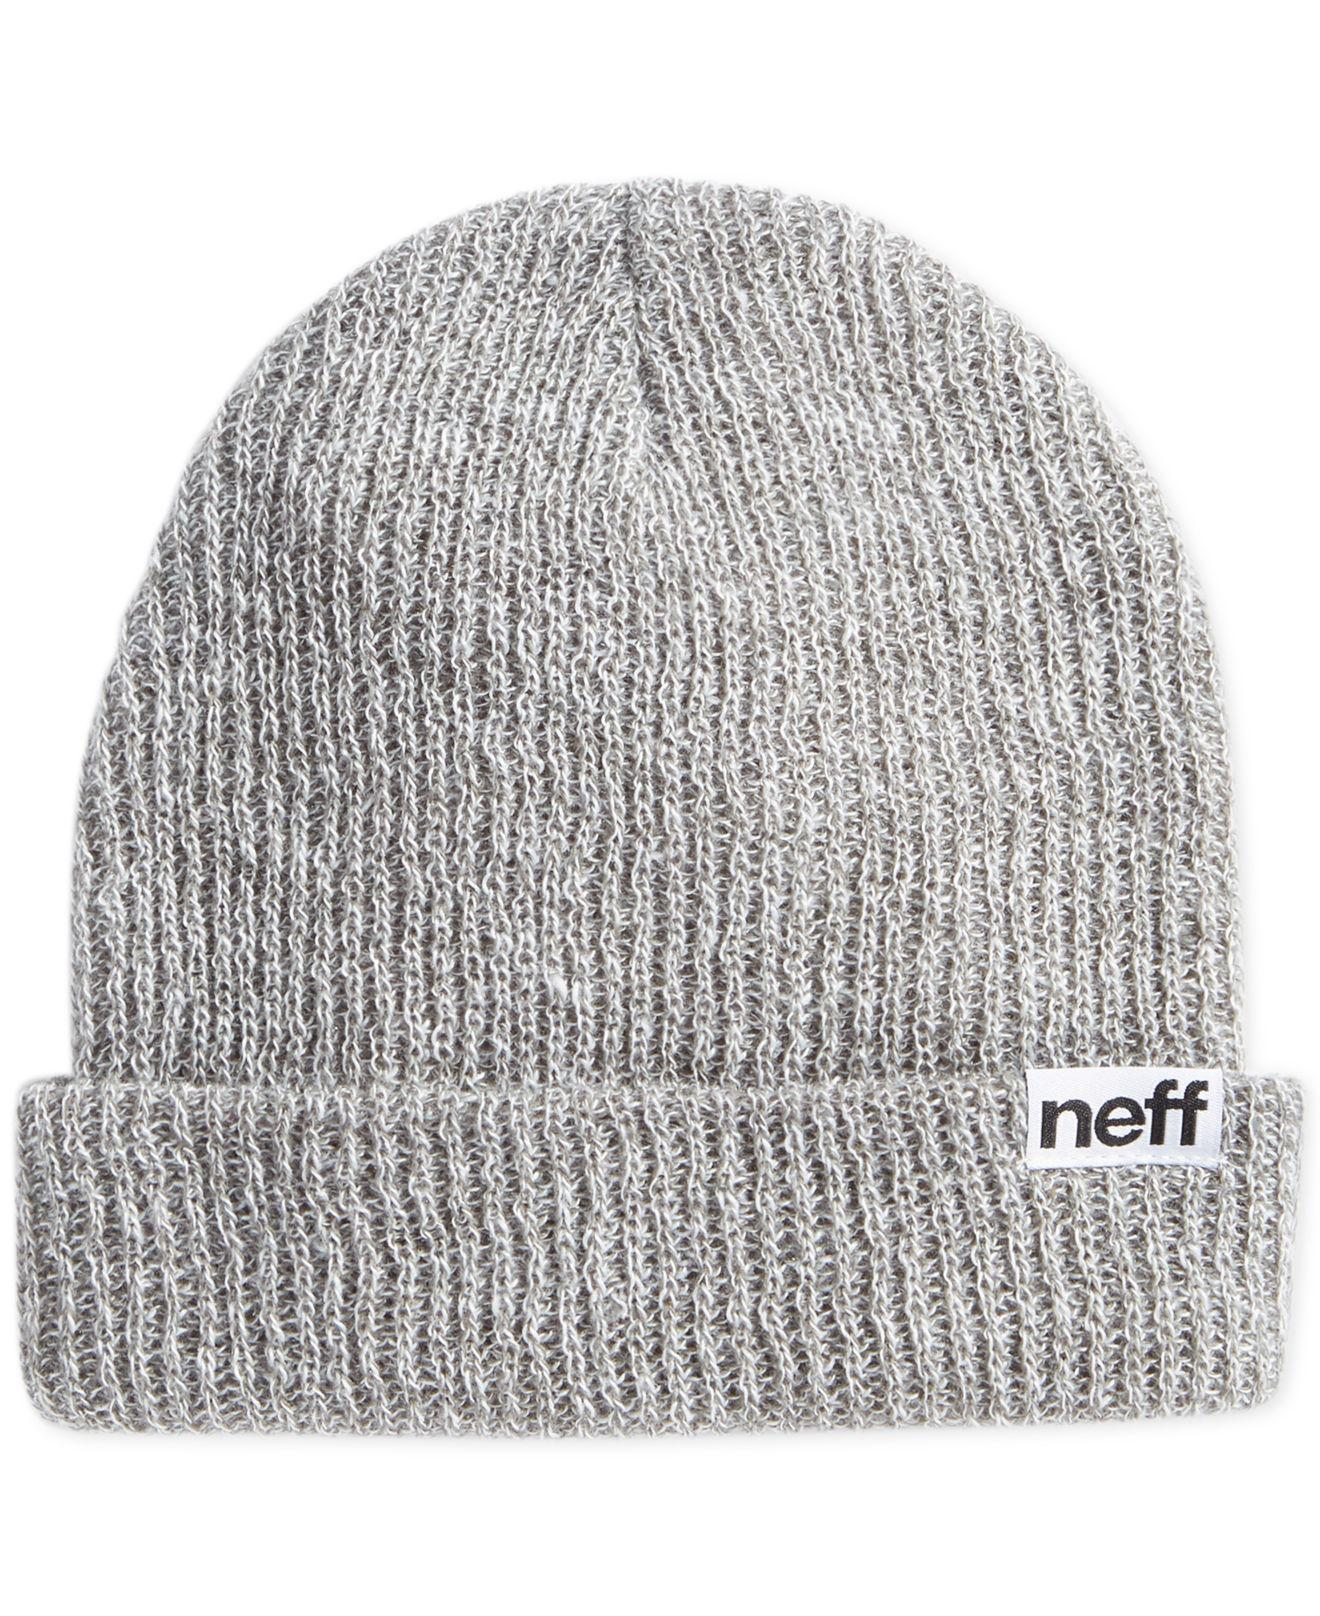 5910c49624f22 Lyst - Neff Daily Foldover Heathered Beanie in Gray